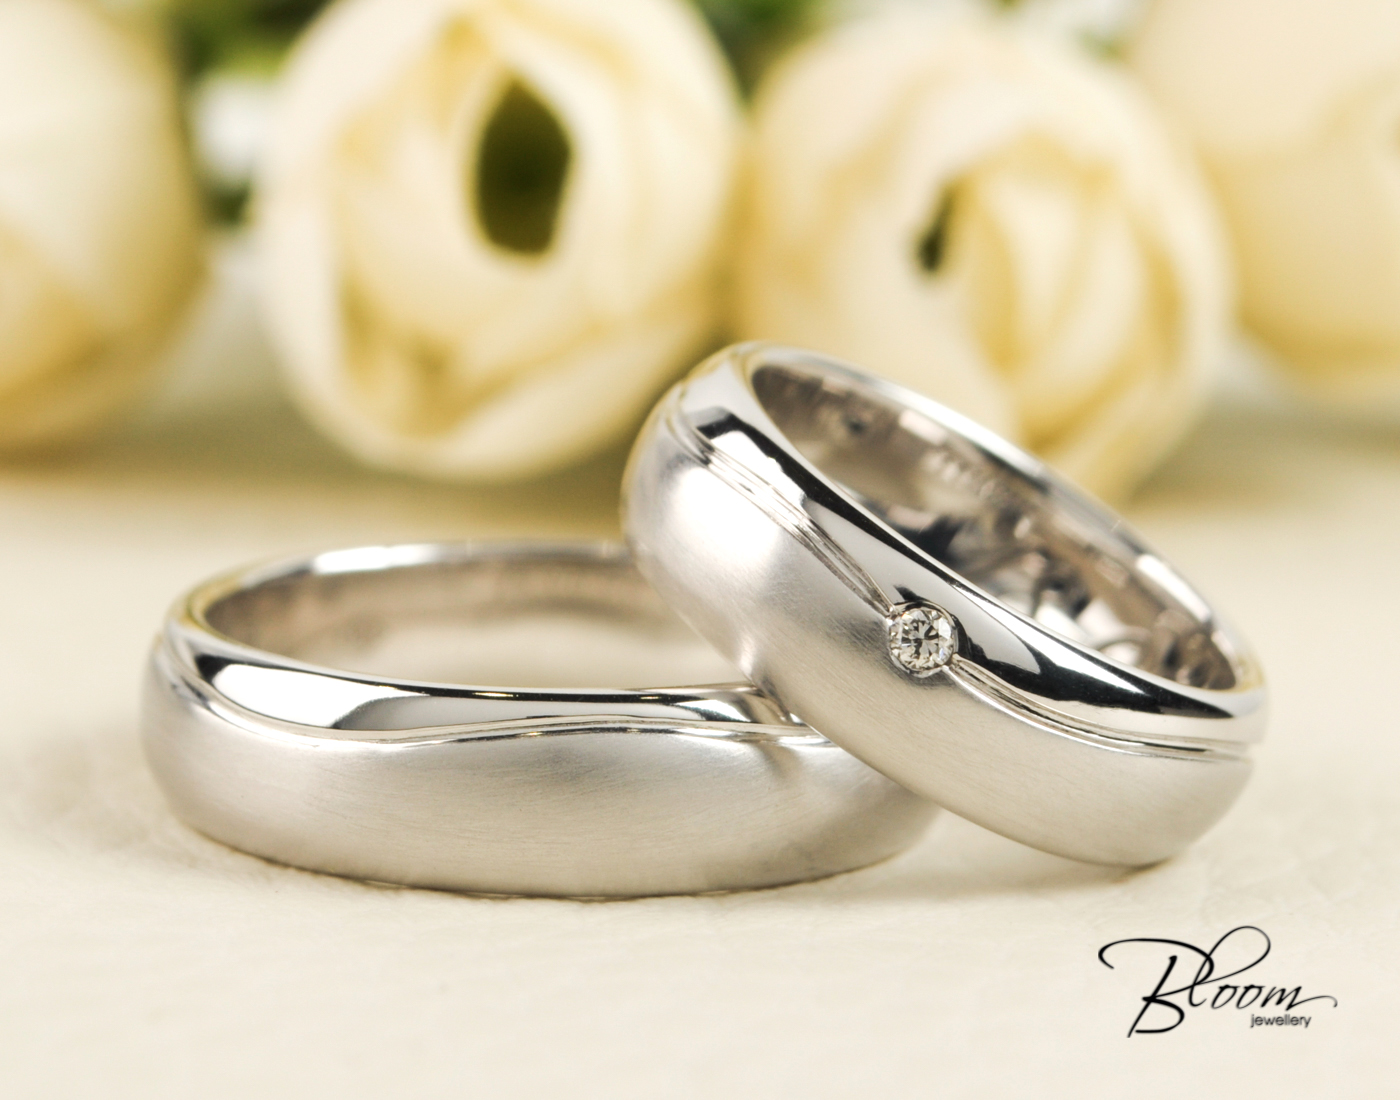 This is a photo of Matte Wedding Bands Heavy White Gold Couple Rings 48K Bloom Jewellery